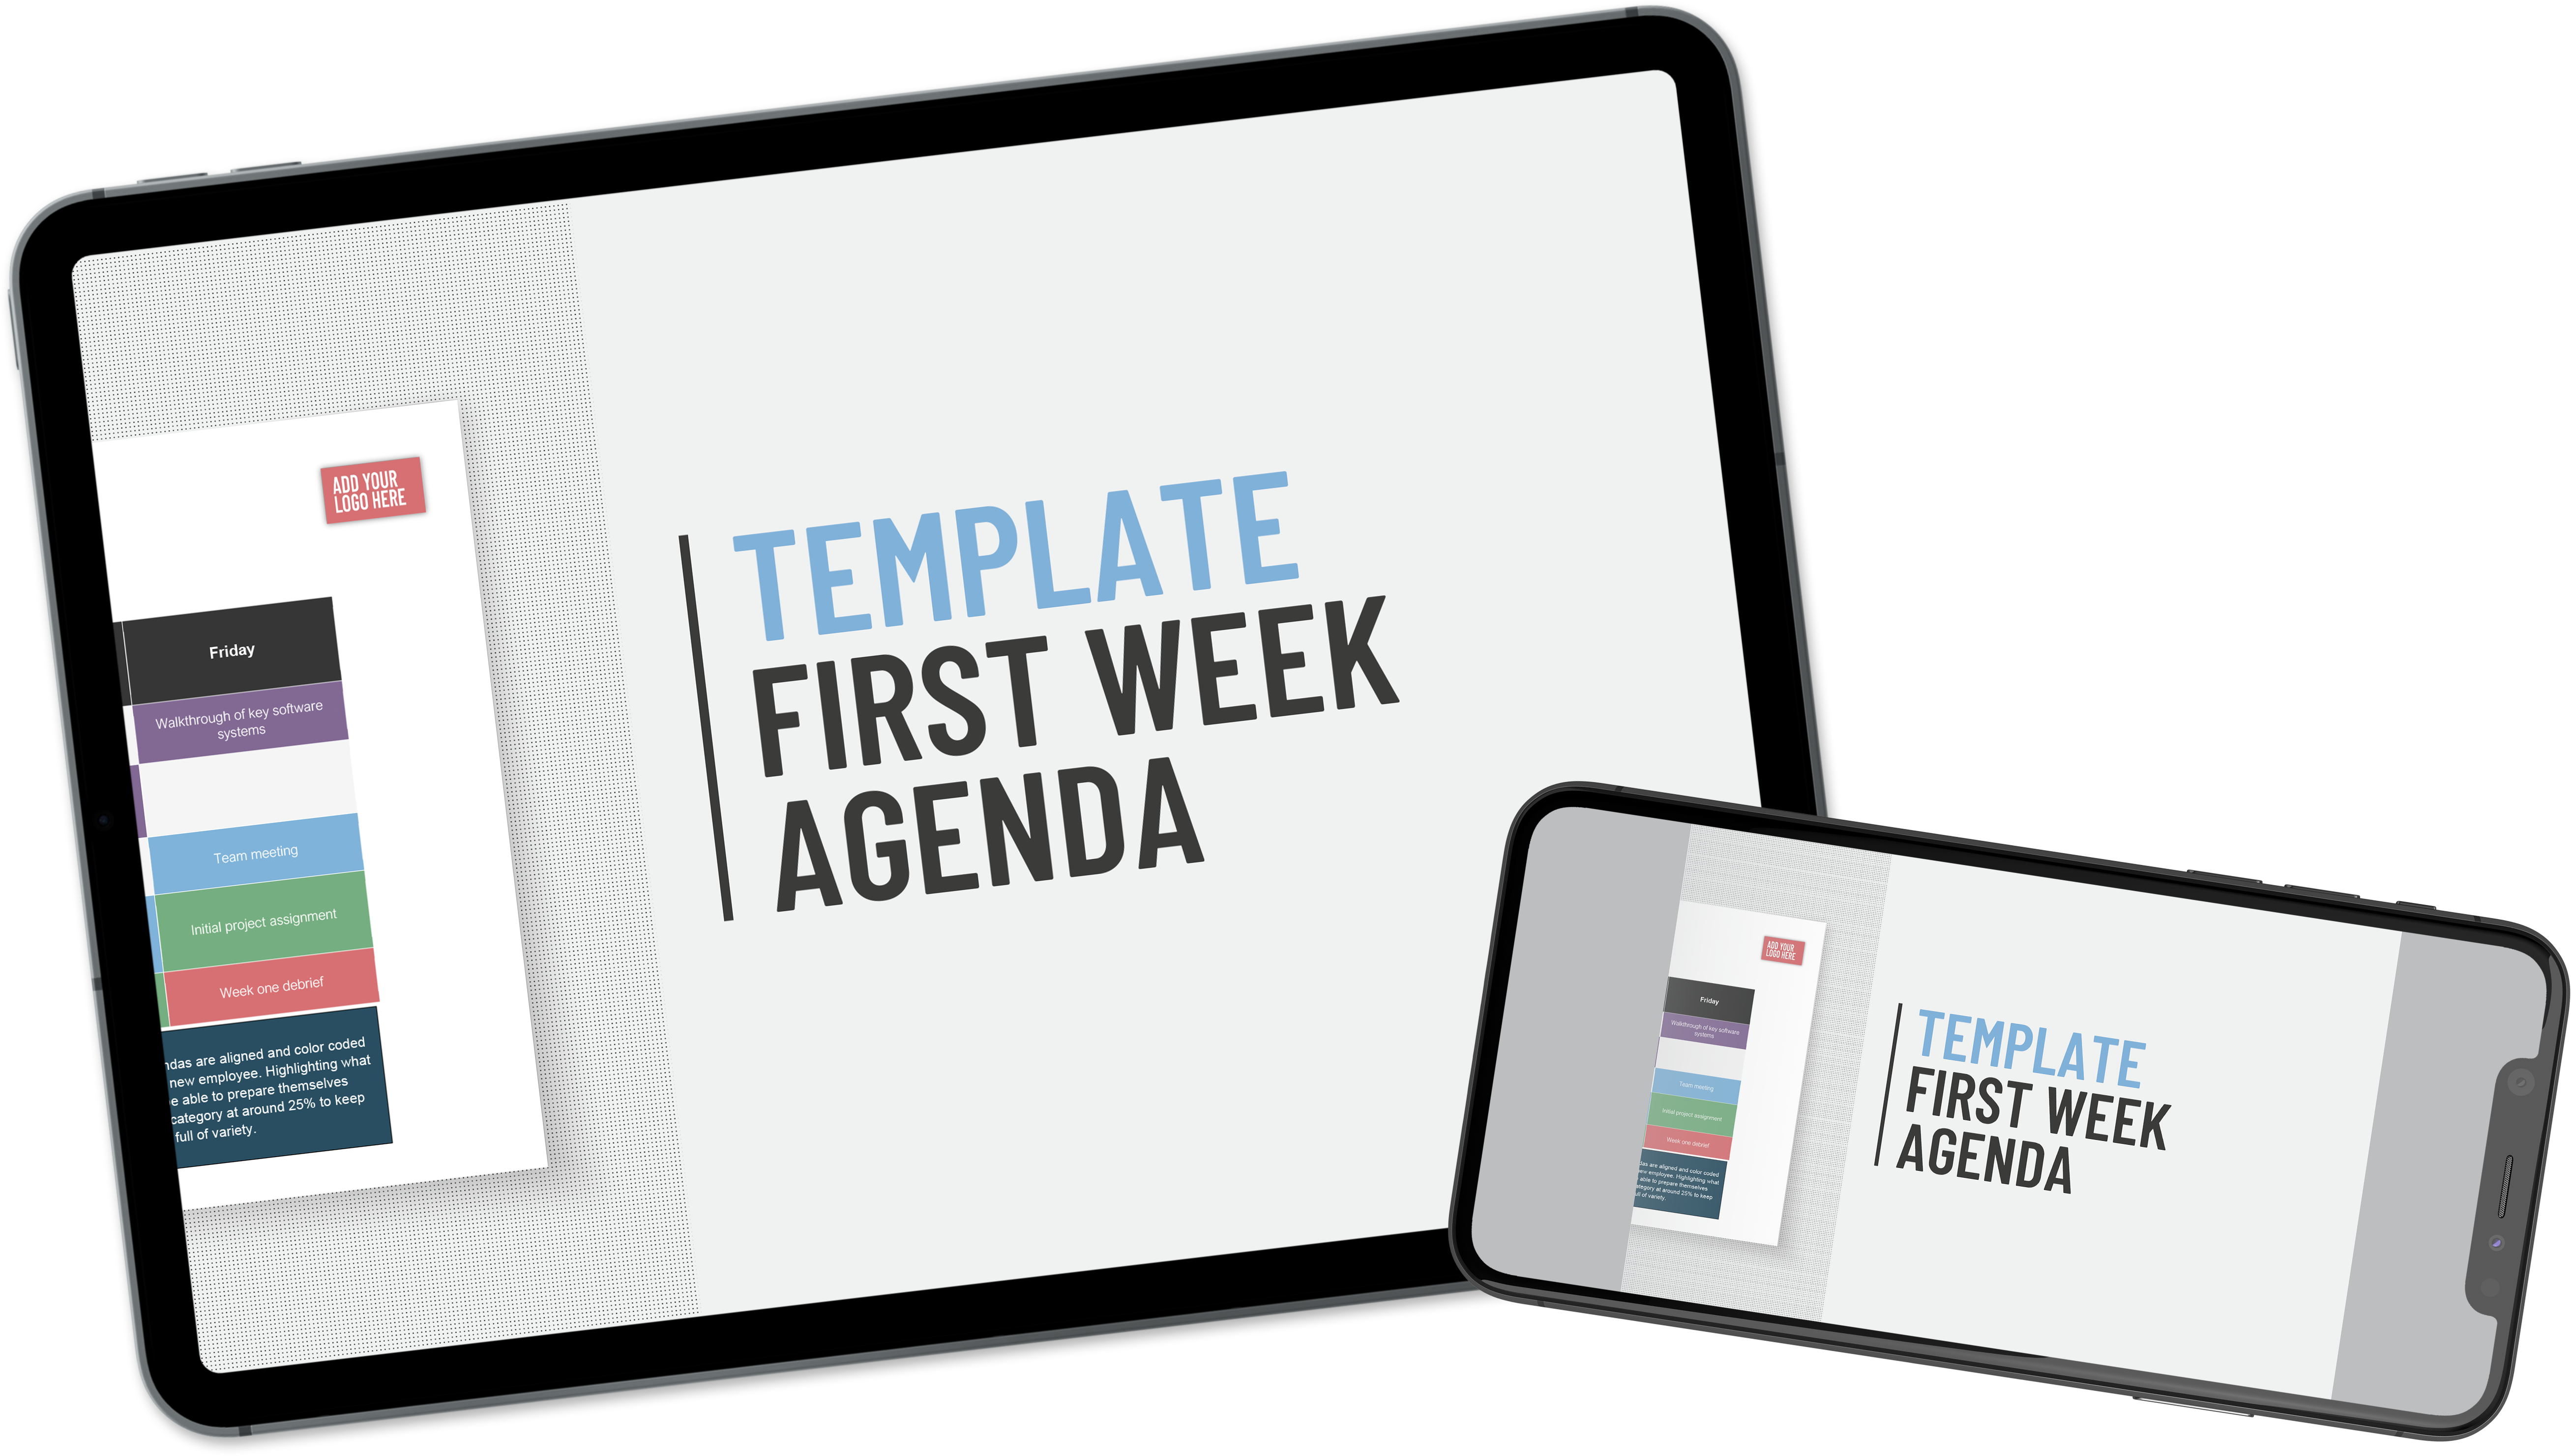 Tablet and mobile showing Applaud HR Virtual Onboarding agenda